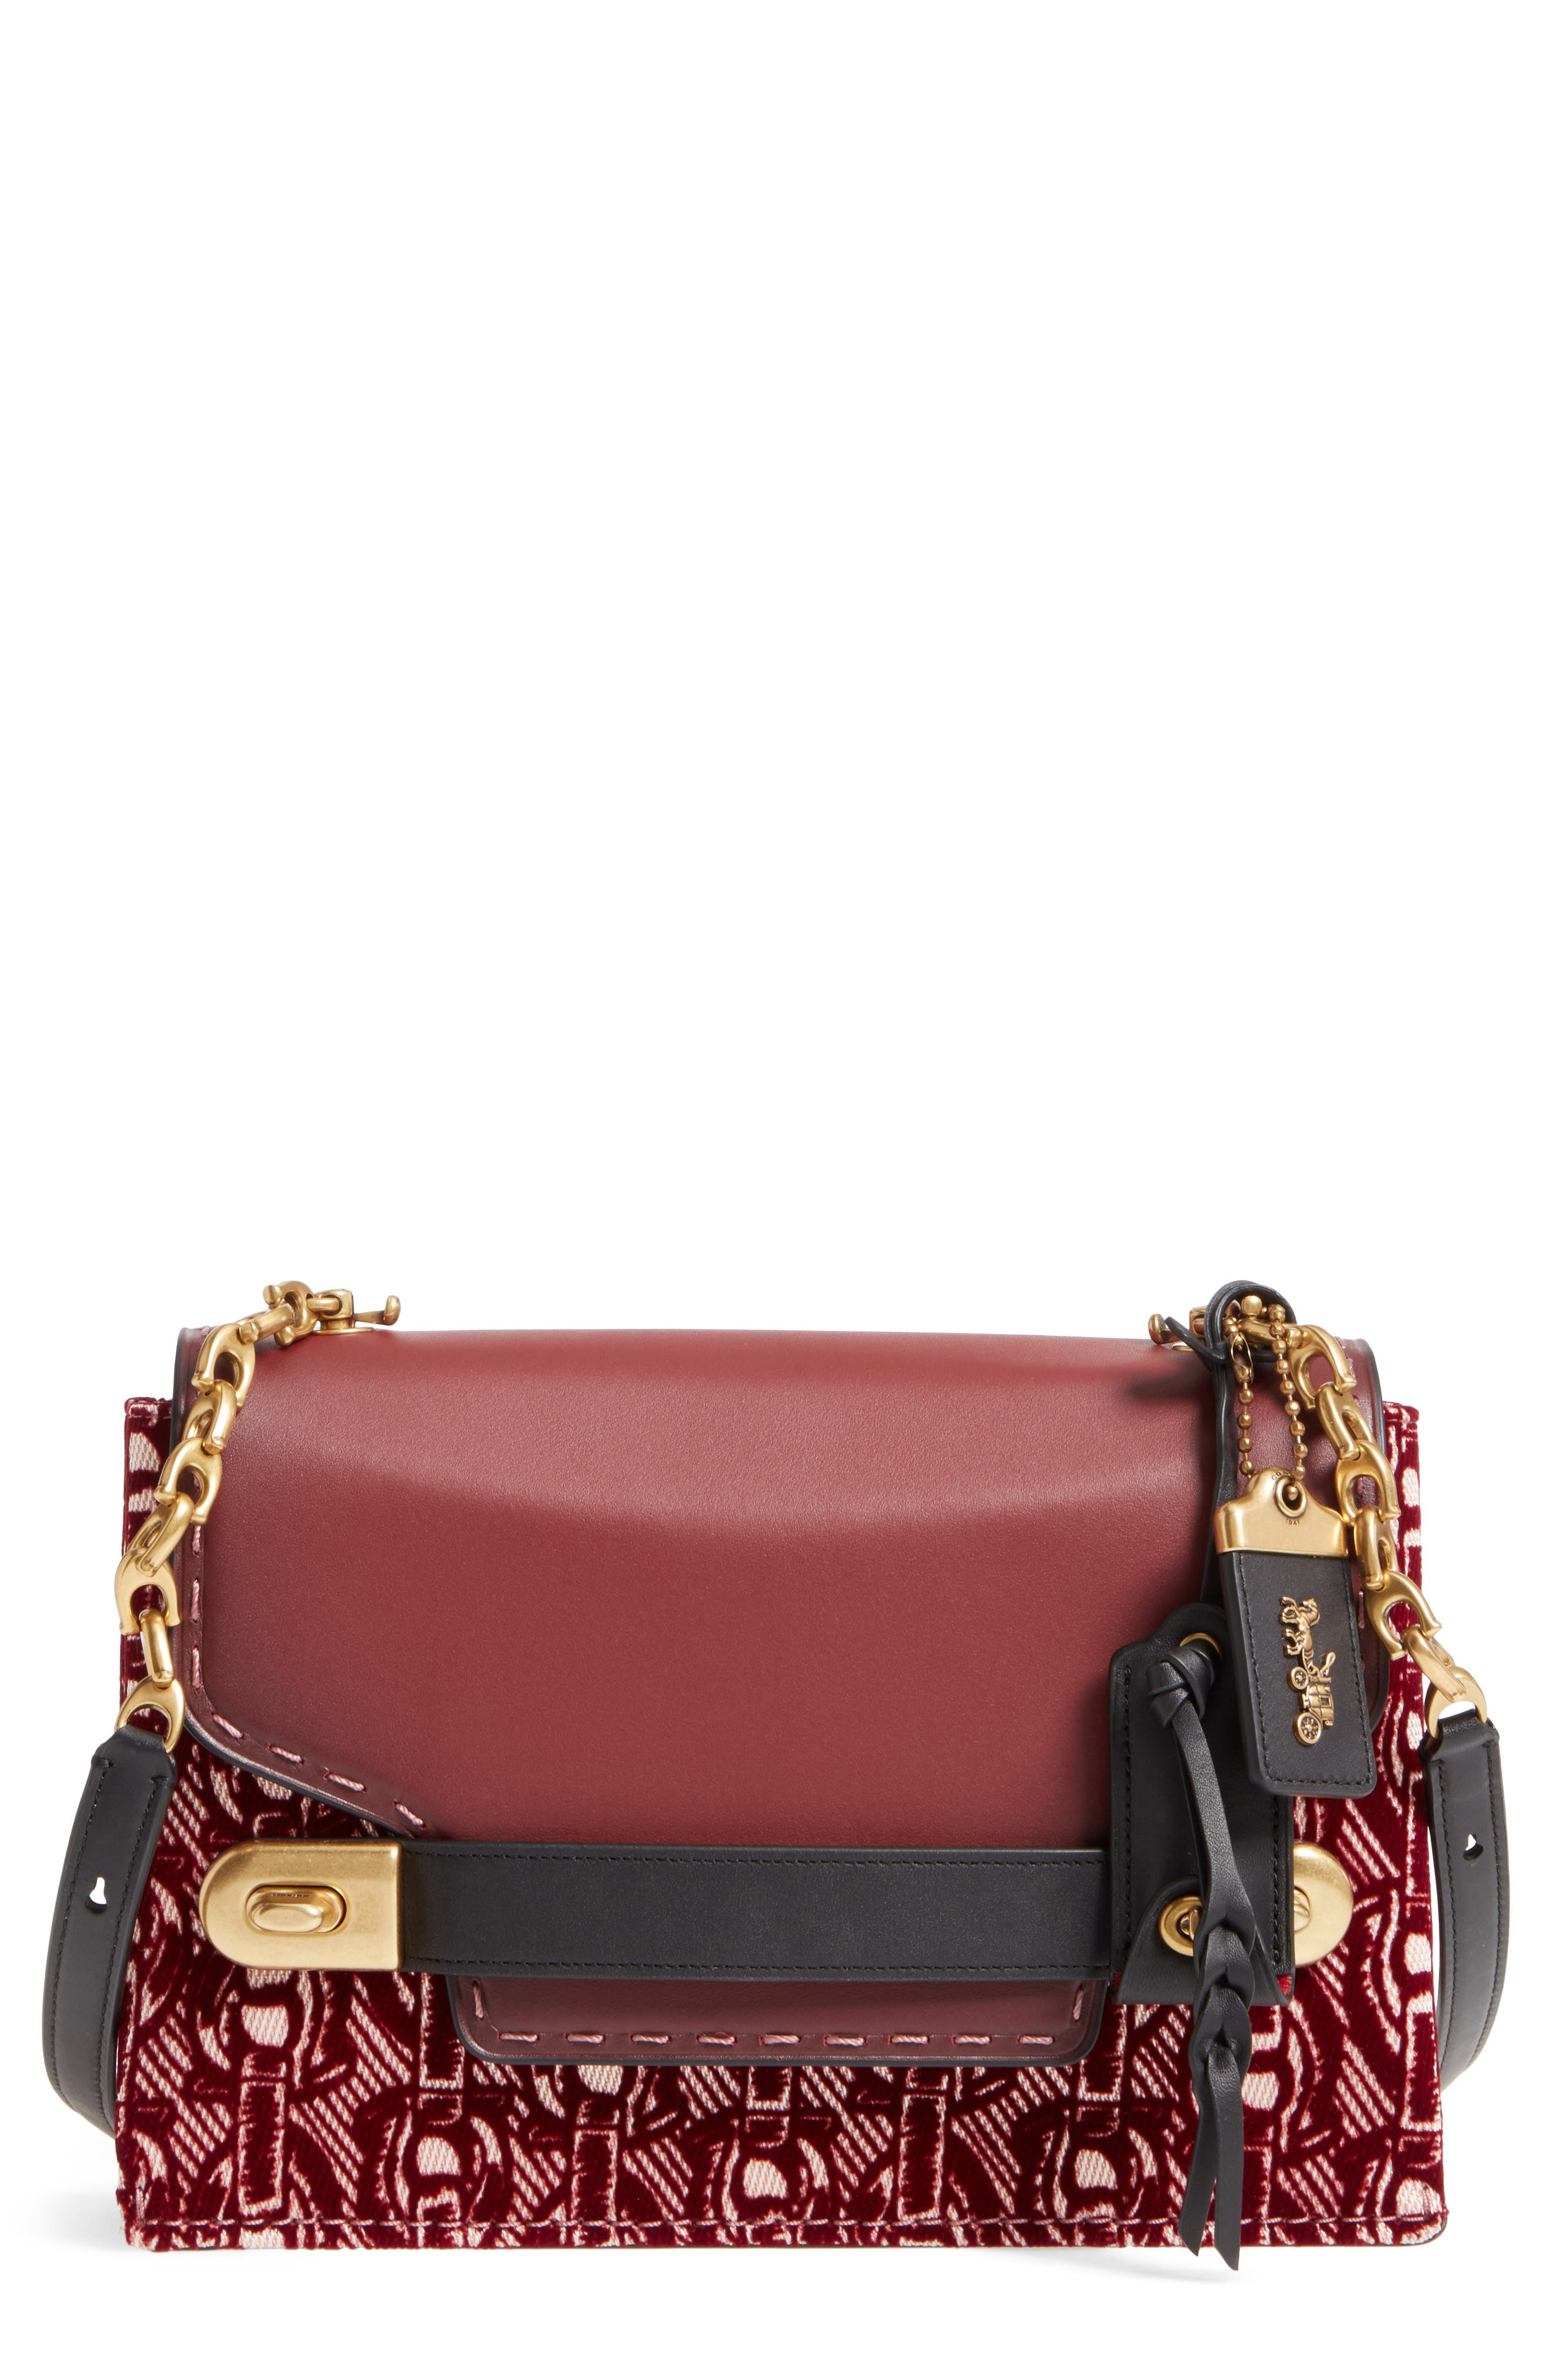 Swagger Chain Leather Crossbody Bag,                             Main thumbnail 1, color,                             Bordeaux